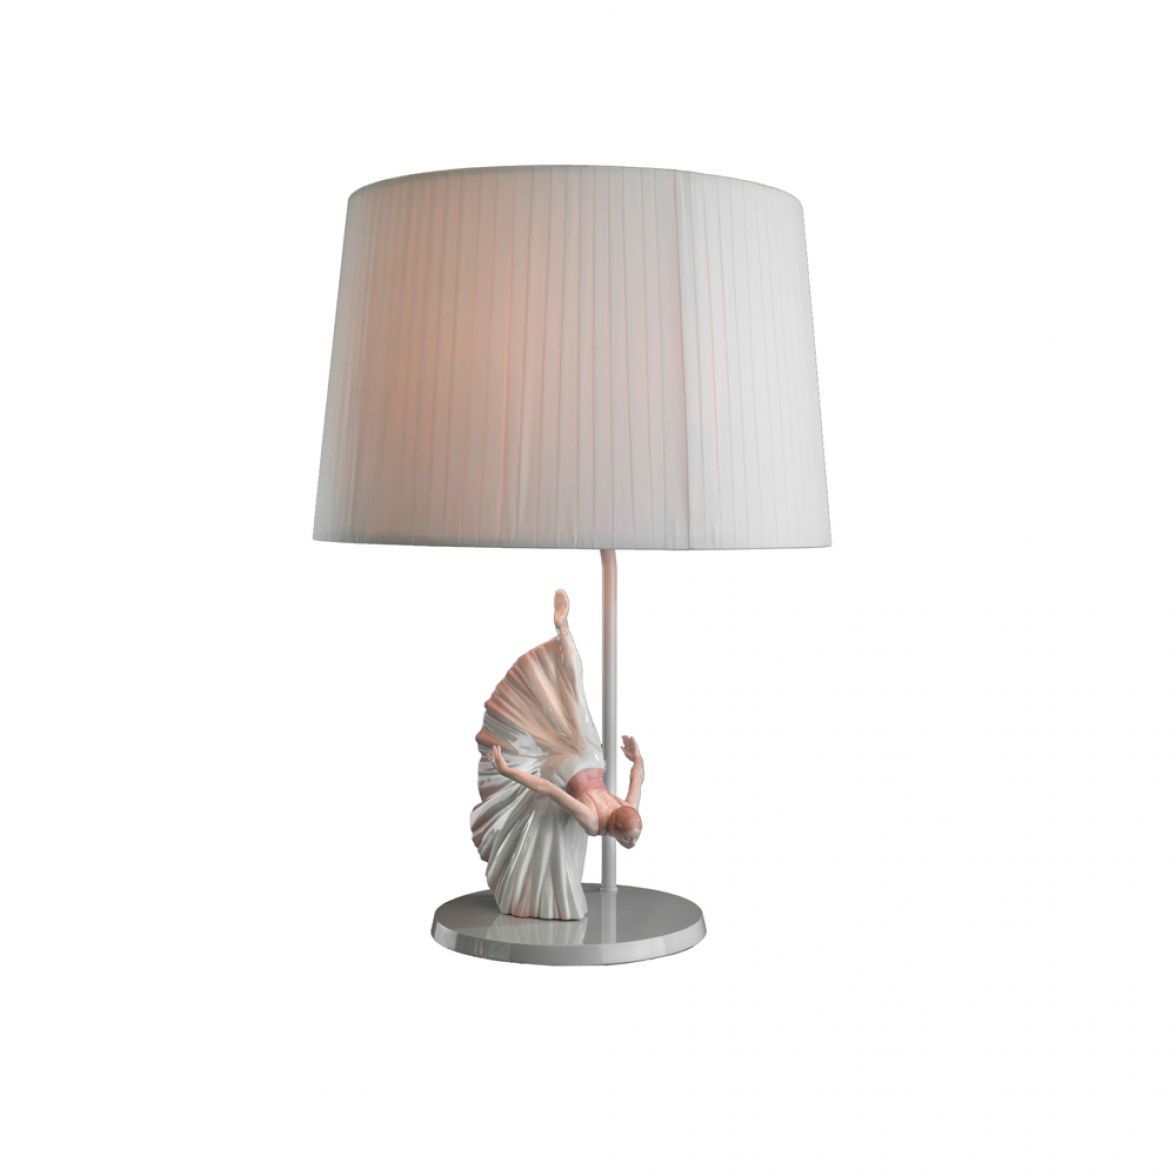 Giselle arabesque table lamp фото цена